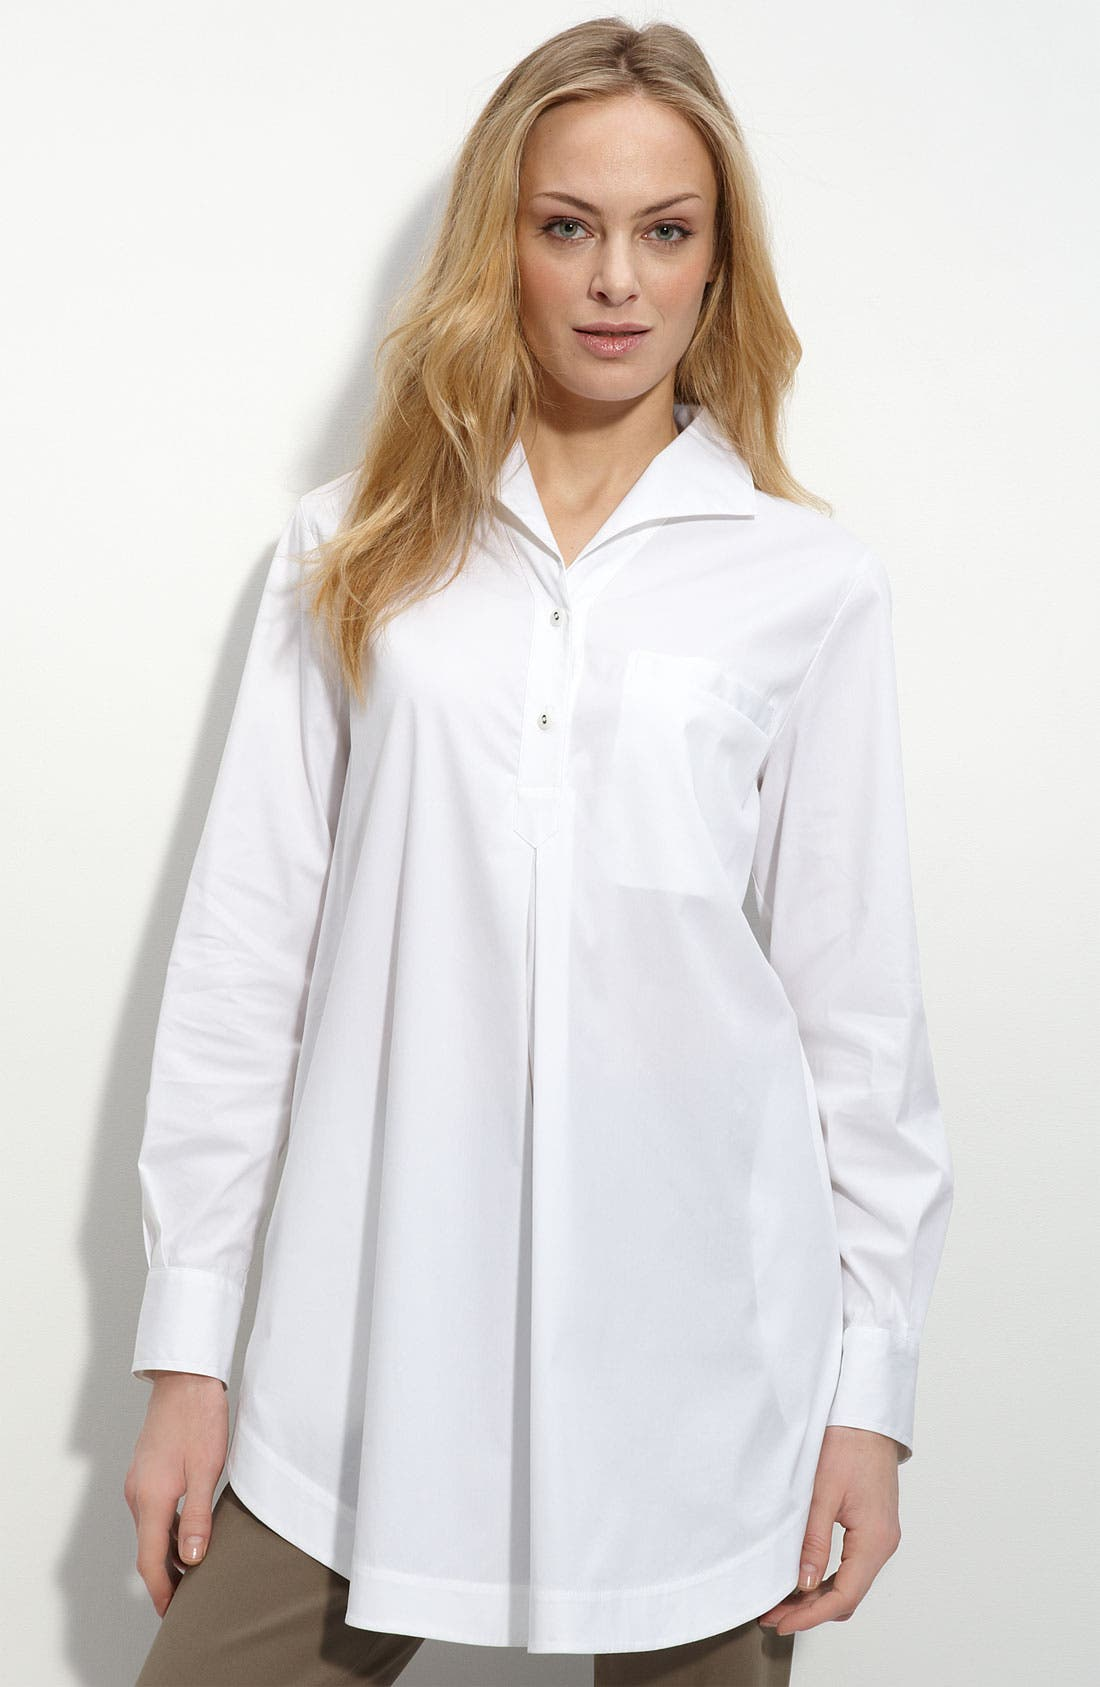 Alternate Image 1 Selected - Lafayette 148 New York 'Excursion' Tunic